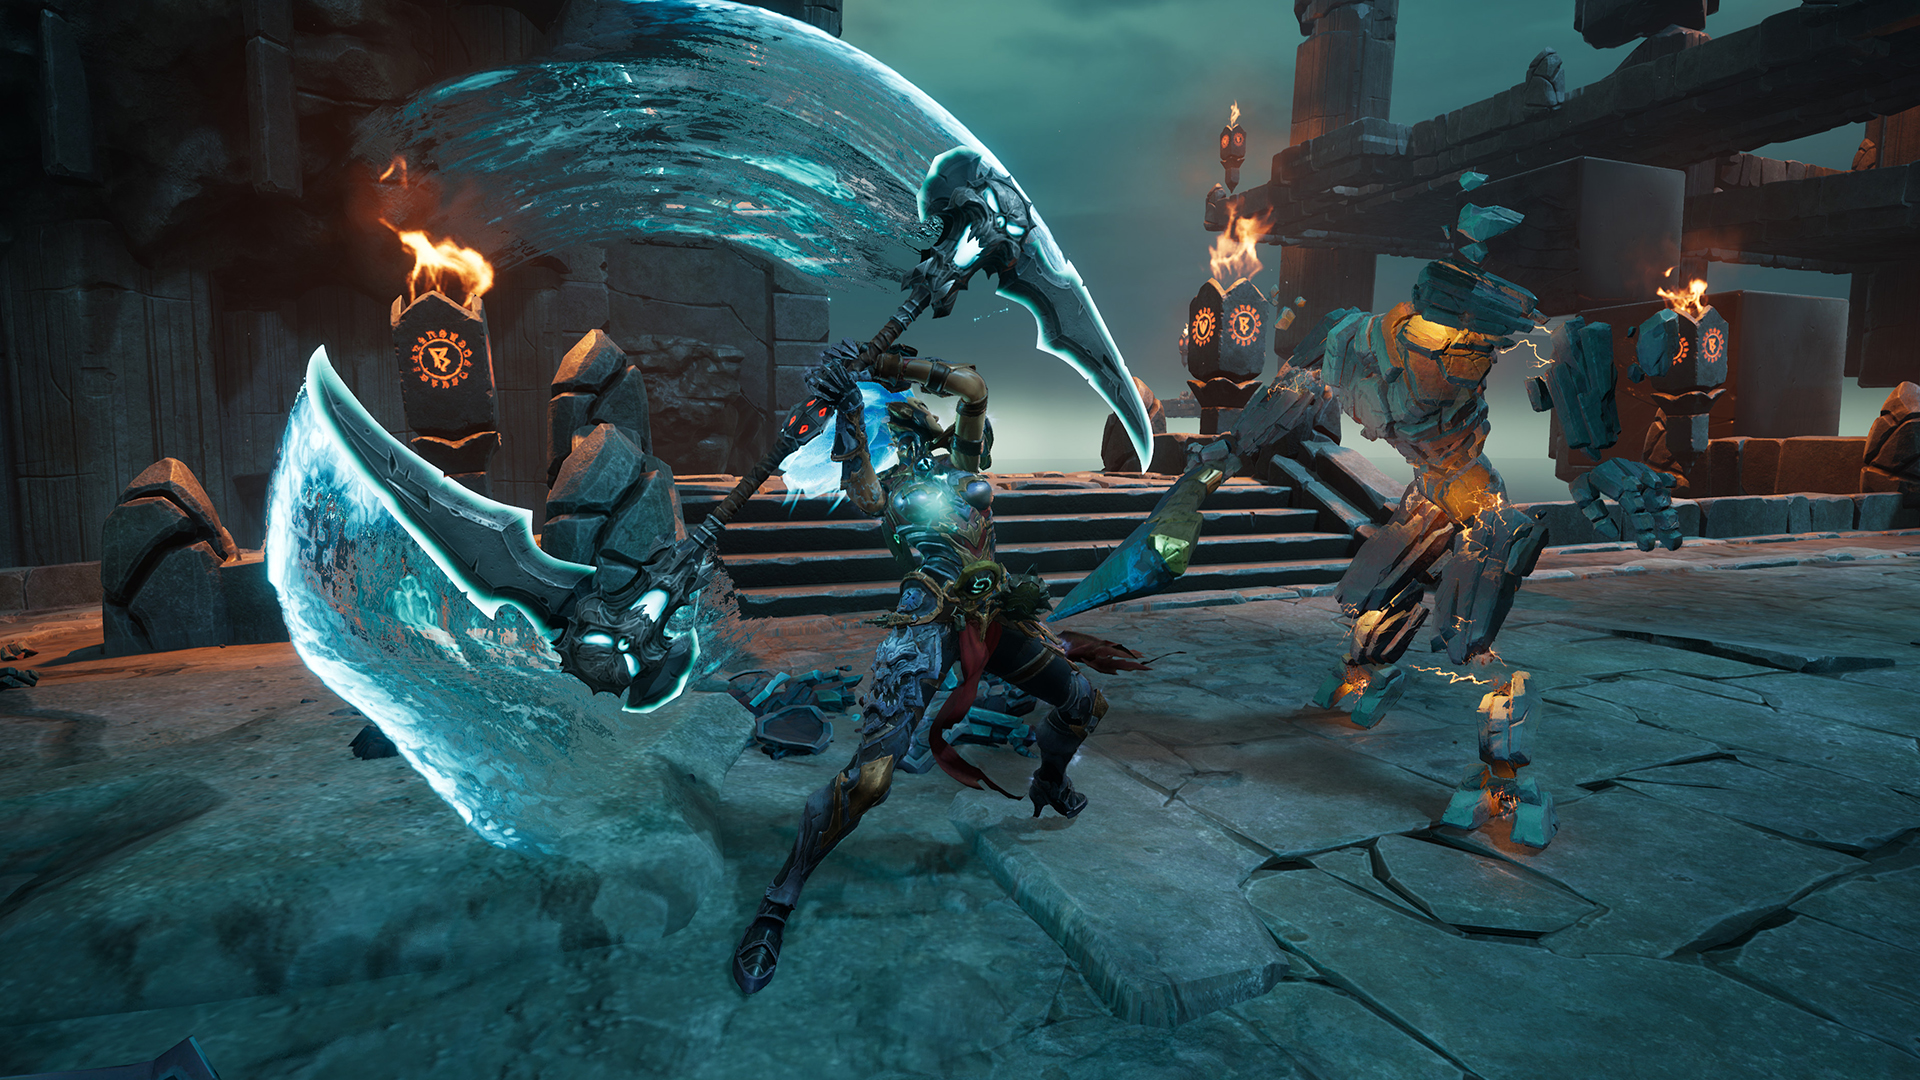 Darksiders 3: Keepers of the Void adds a new quest and